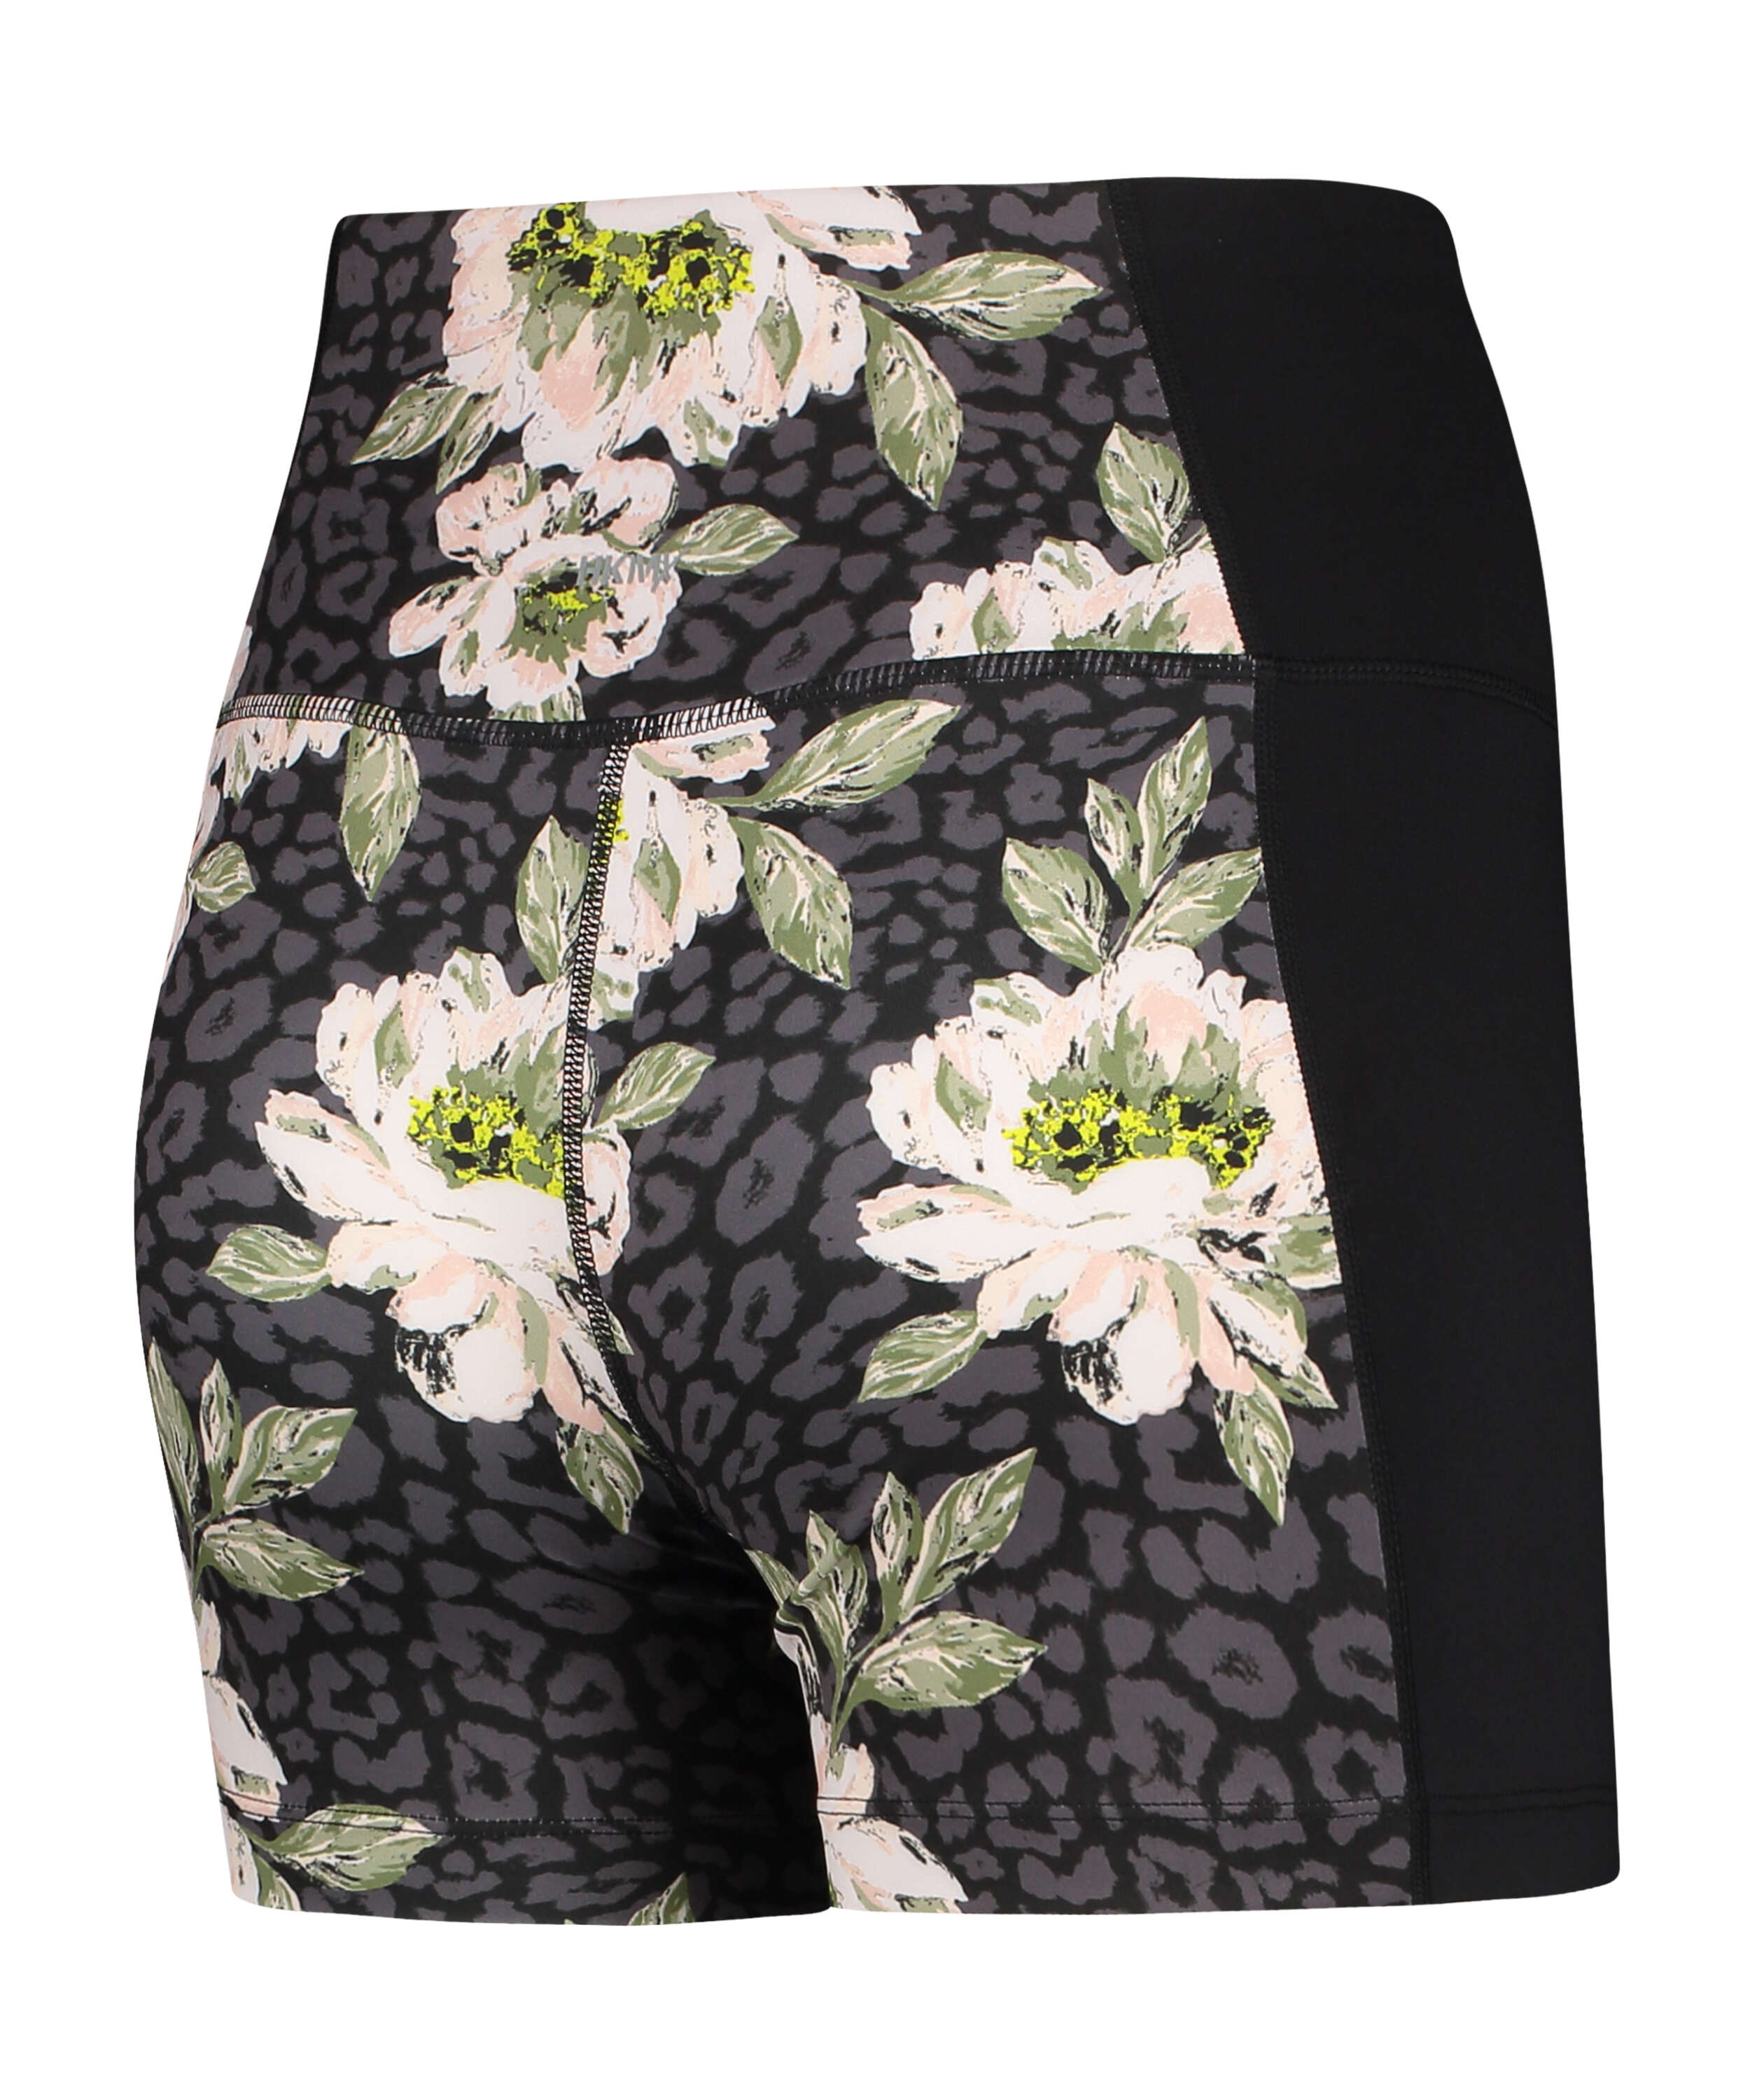 HKMX high waisted shorts Bloom, Black, main